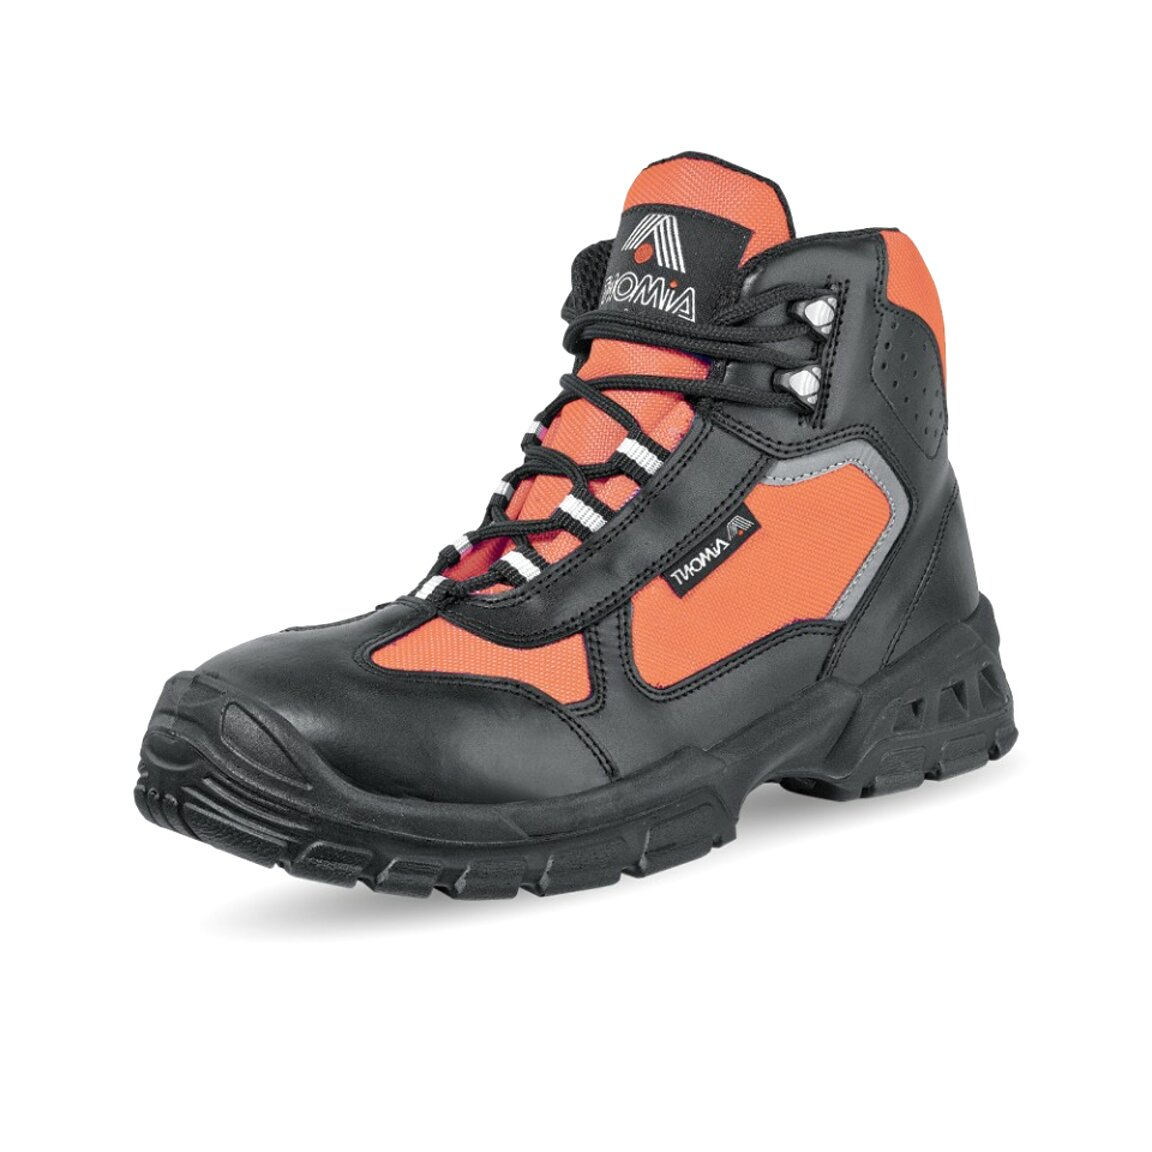 Aimont Scipio 3 7ax27 Safety Toe Shoe Boots Industrial Maintenance E4 LL67